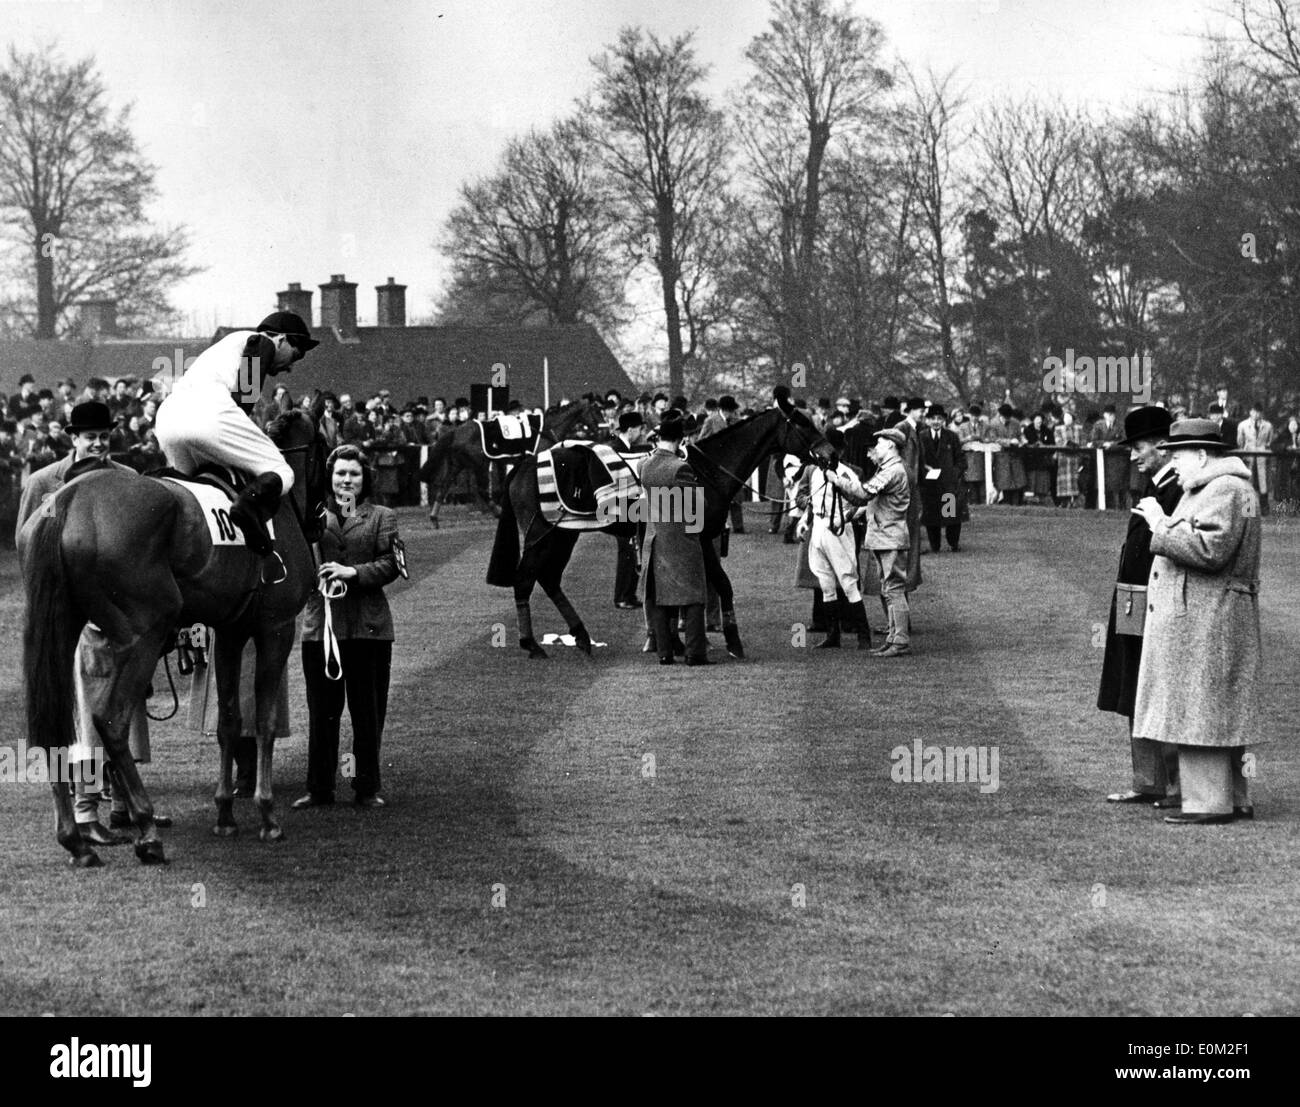 Sir Winston Churchill at the horse races Stock Photo